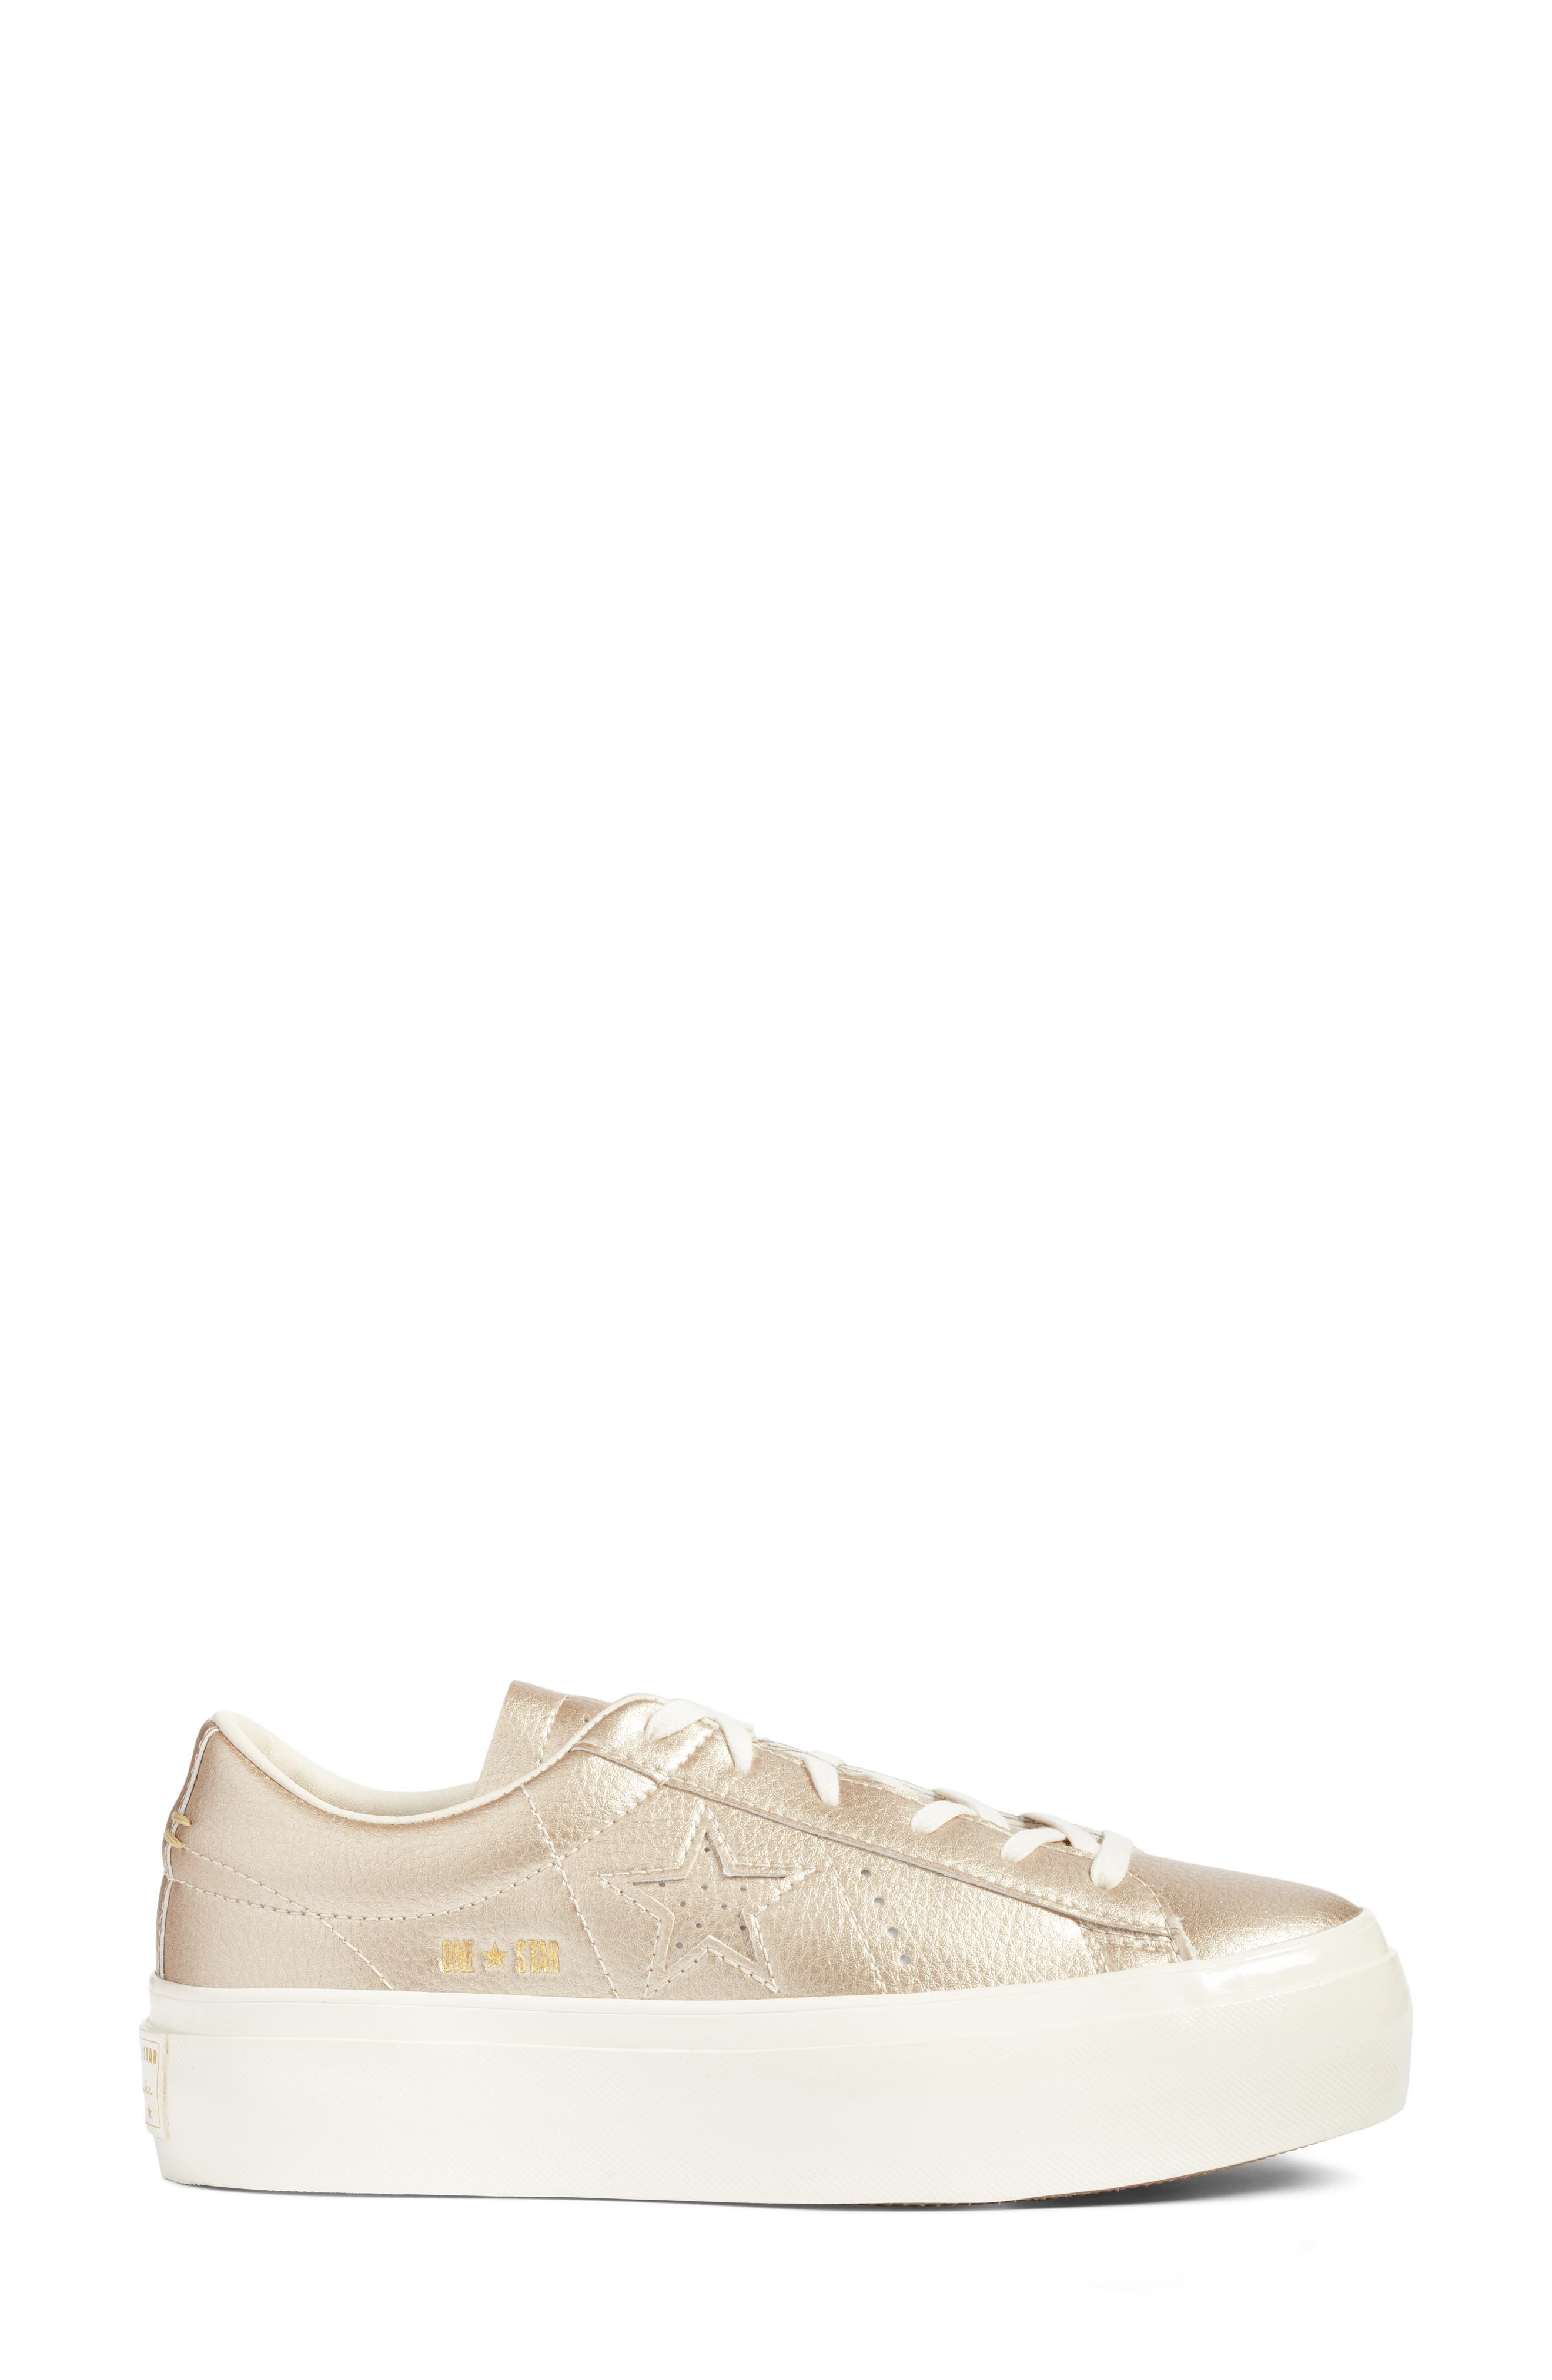 Chuck Taylor<sup>®</sup> All Star<sup>®</sup> One Star Metallic Platform Sneaker,                             Alternate thumbnail 3, color,